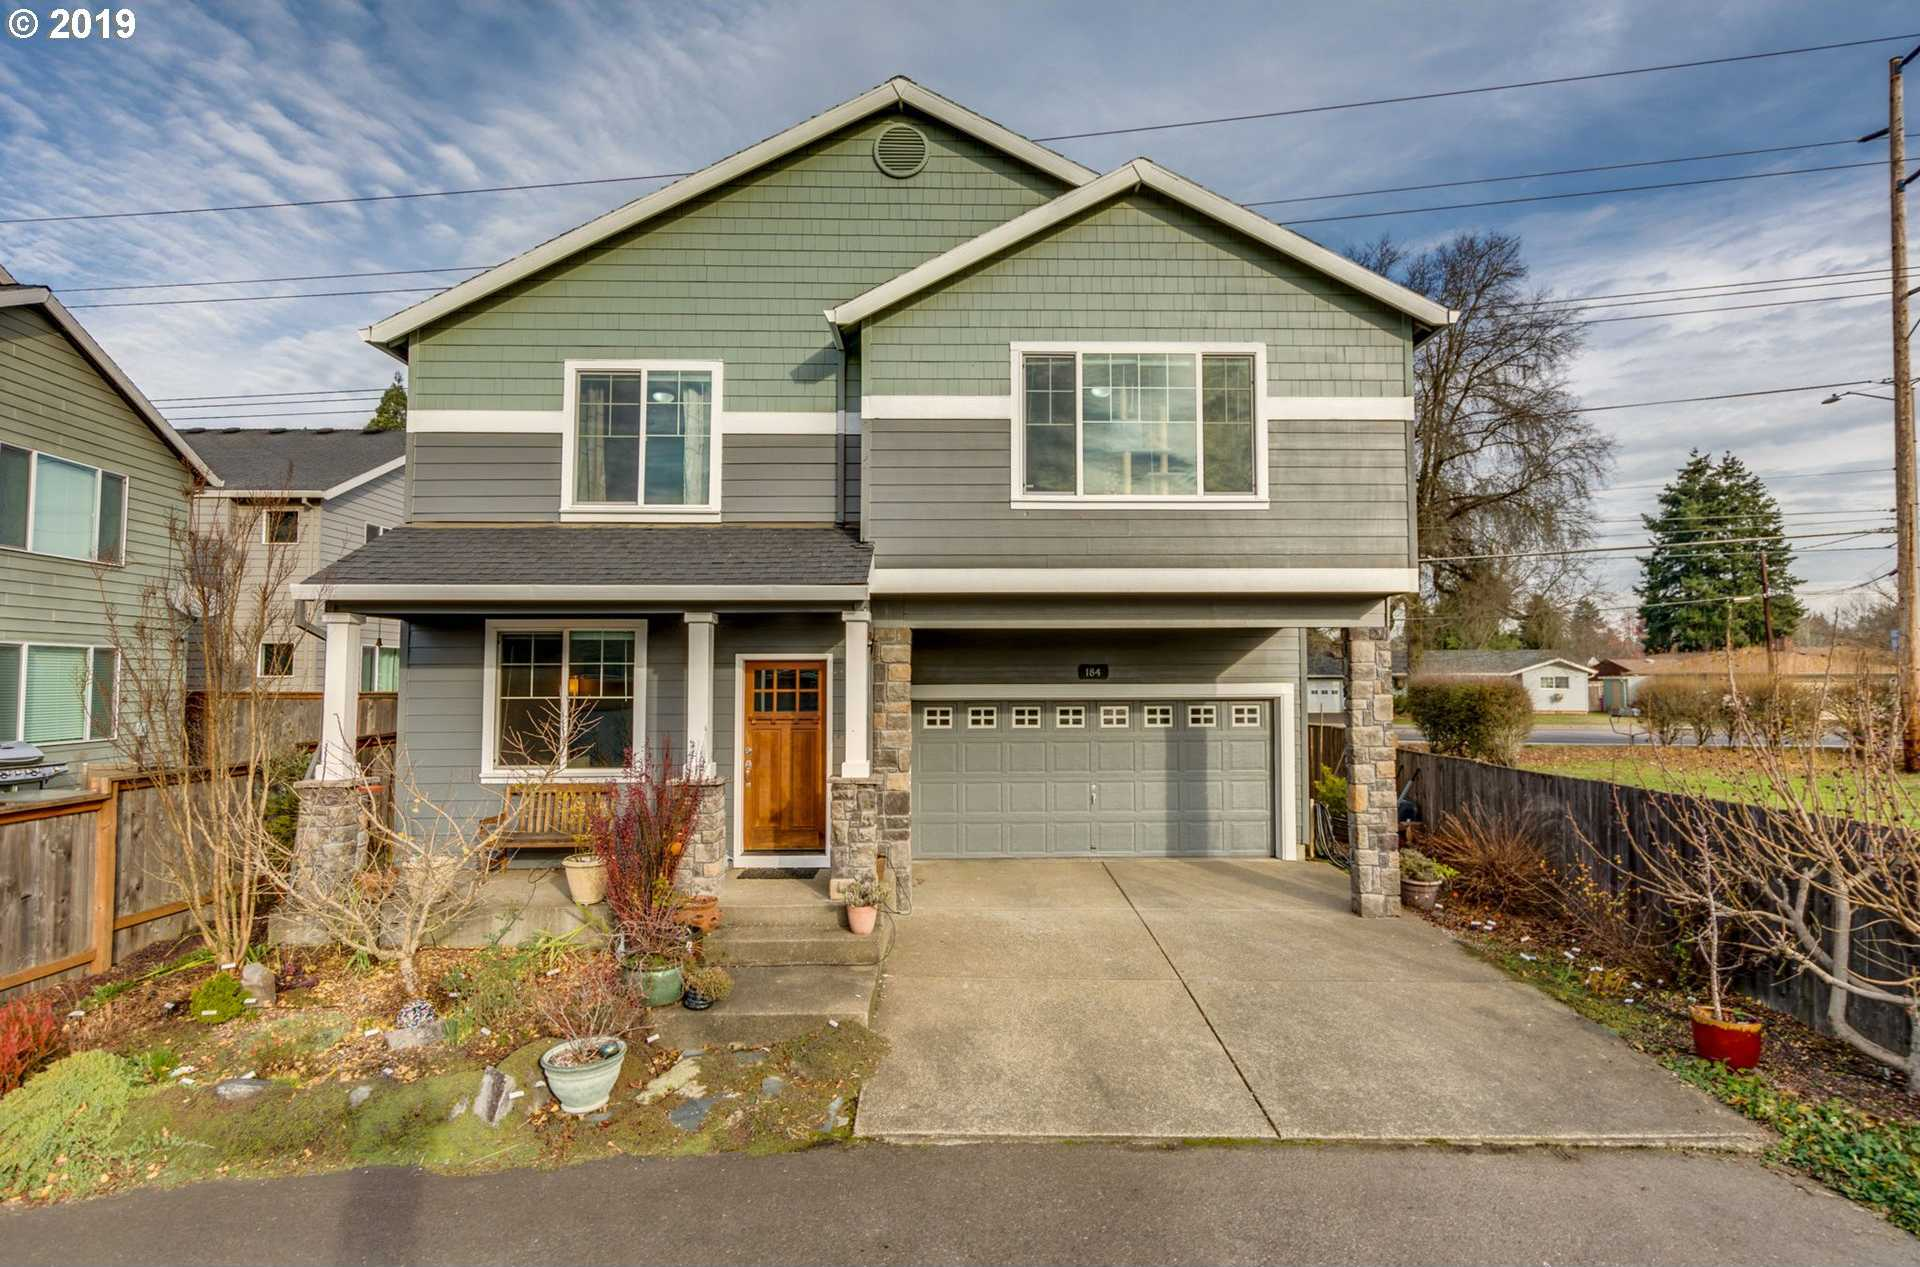 $425,000 - 4Br/3Ba -  for Sale in Hillsboro